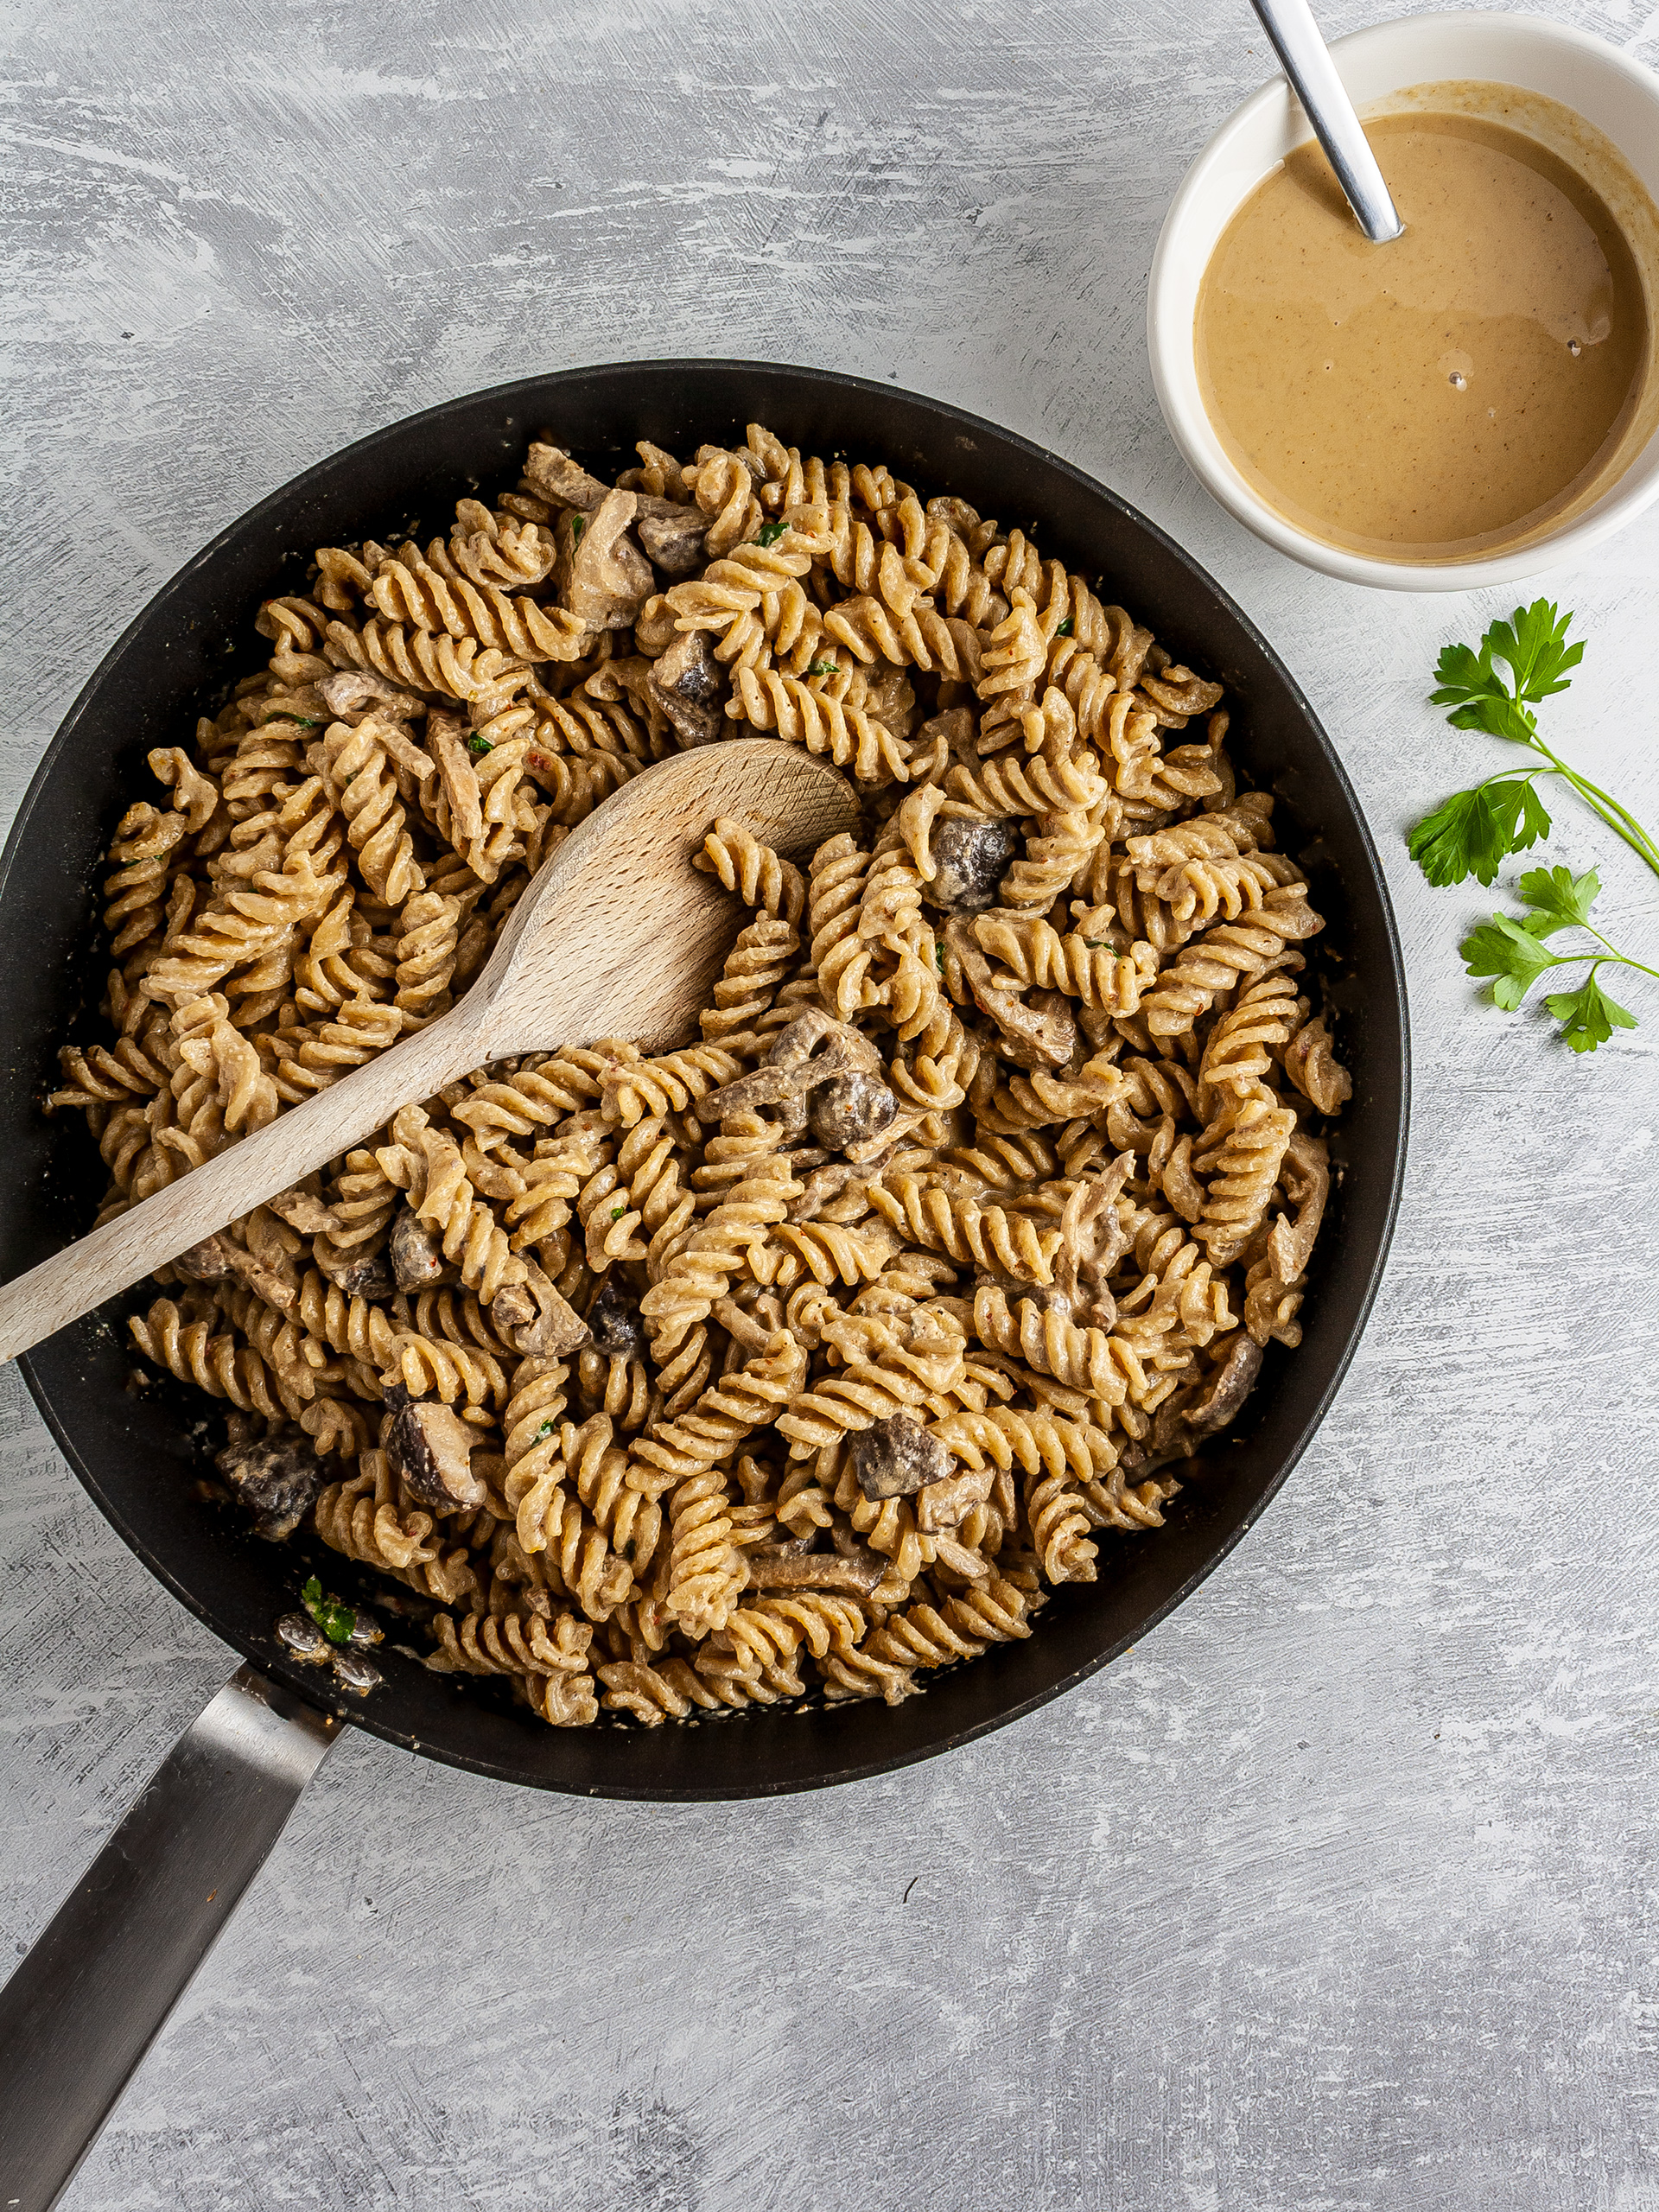 Pasta with tahini sauce in a skillet